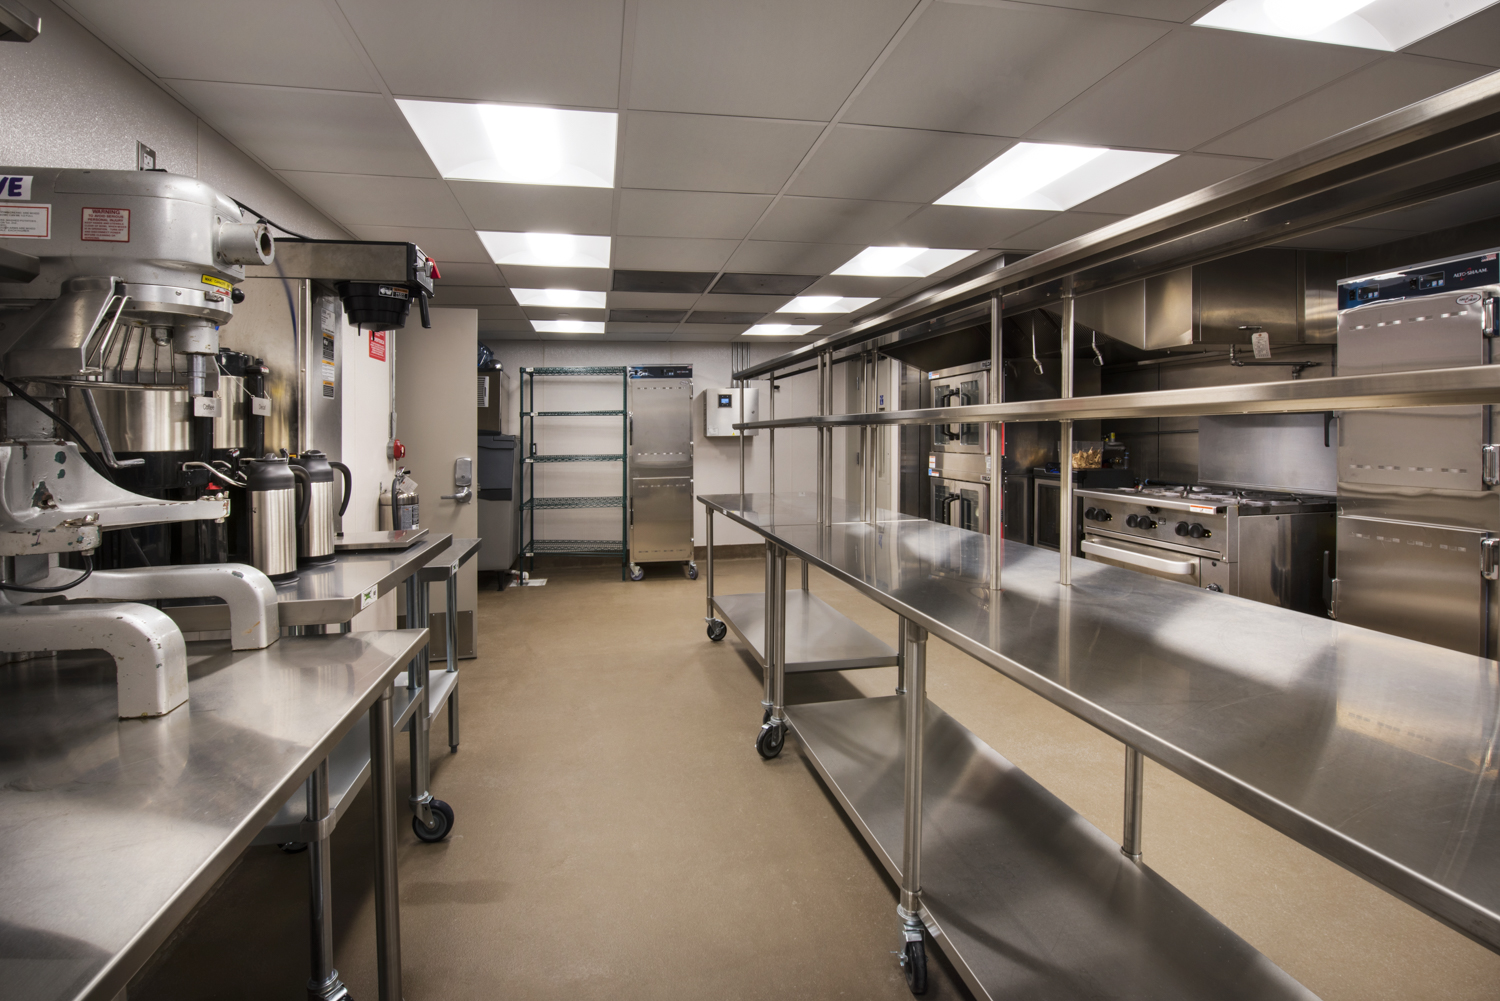 VailNordicCenter_CateringKitchen.jpg